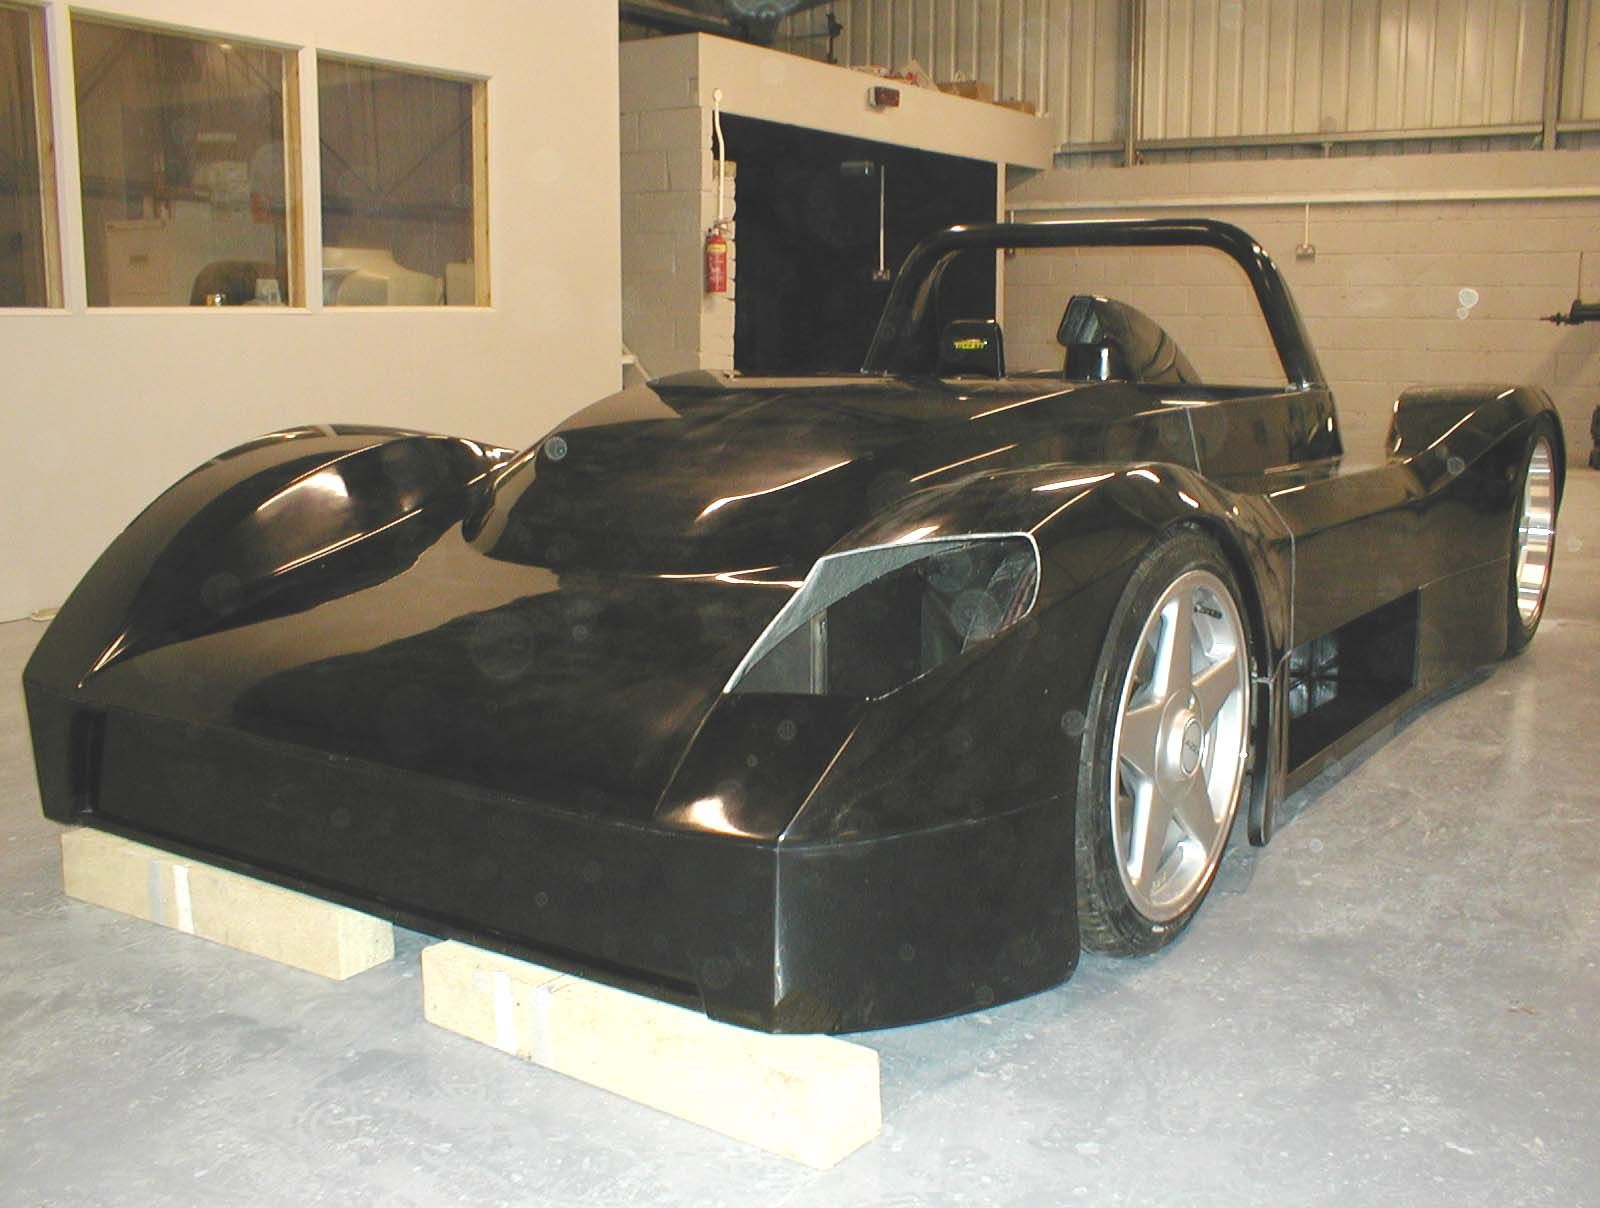 We'd never quite decided on the front lighting positioning (this car was road legal), so we waited until we had the body until playing about with shapes and positions. The final shape ensured the lamp was positioned to meet SVA regulations.